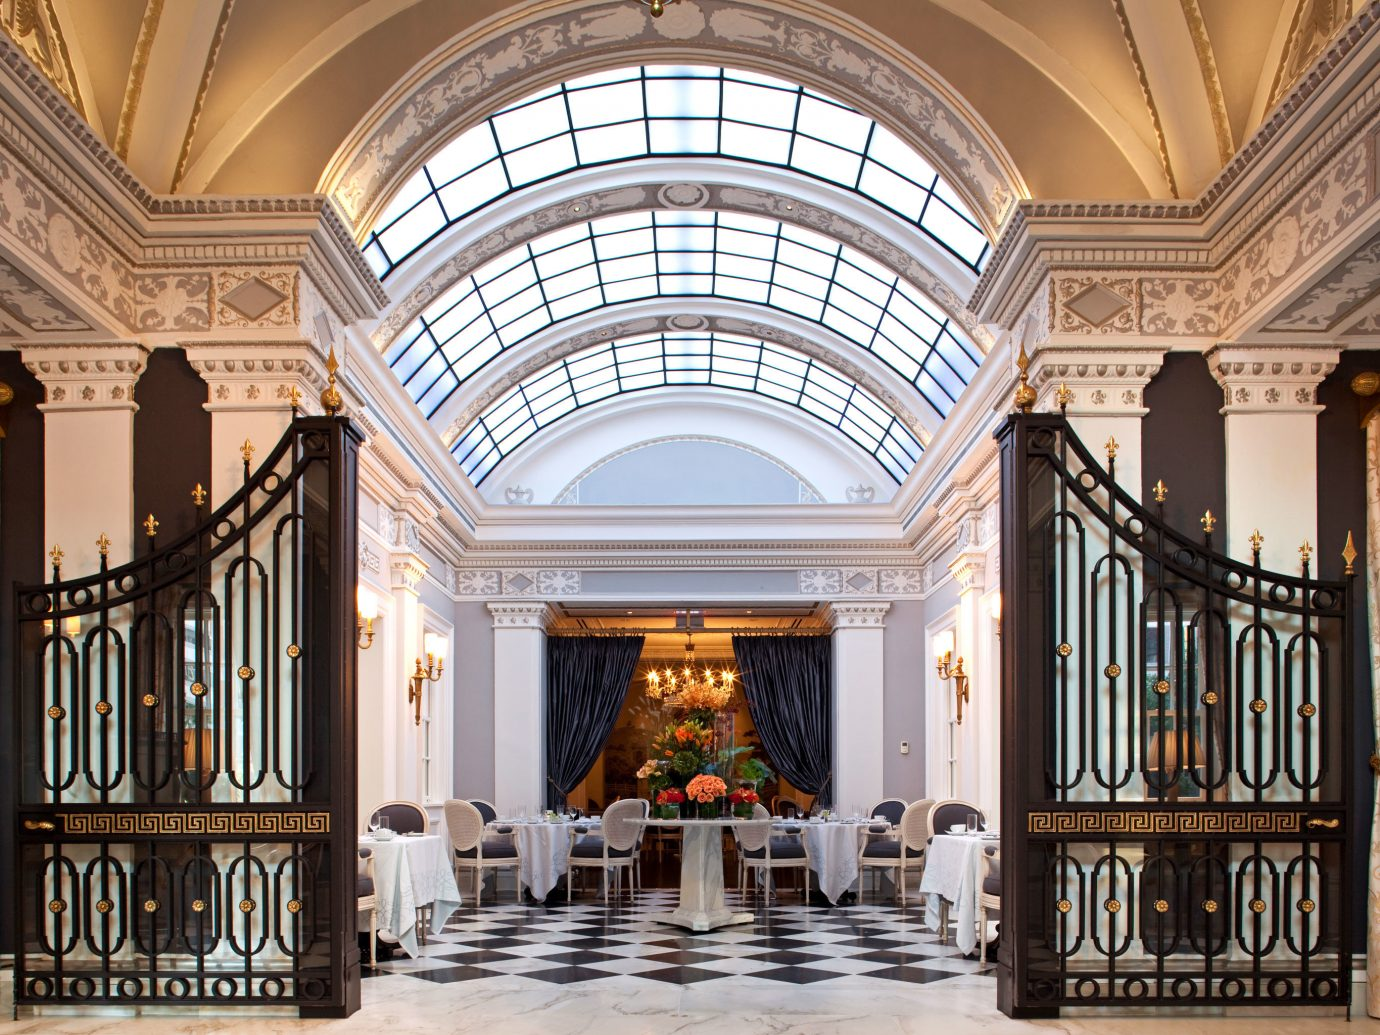 Boutique Hotels Hotels building indoor estate palace chapel Church place of worship hall interior design mansion synagogue colonnade altar tiled